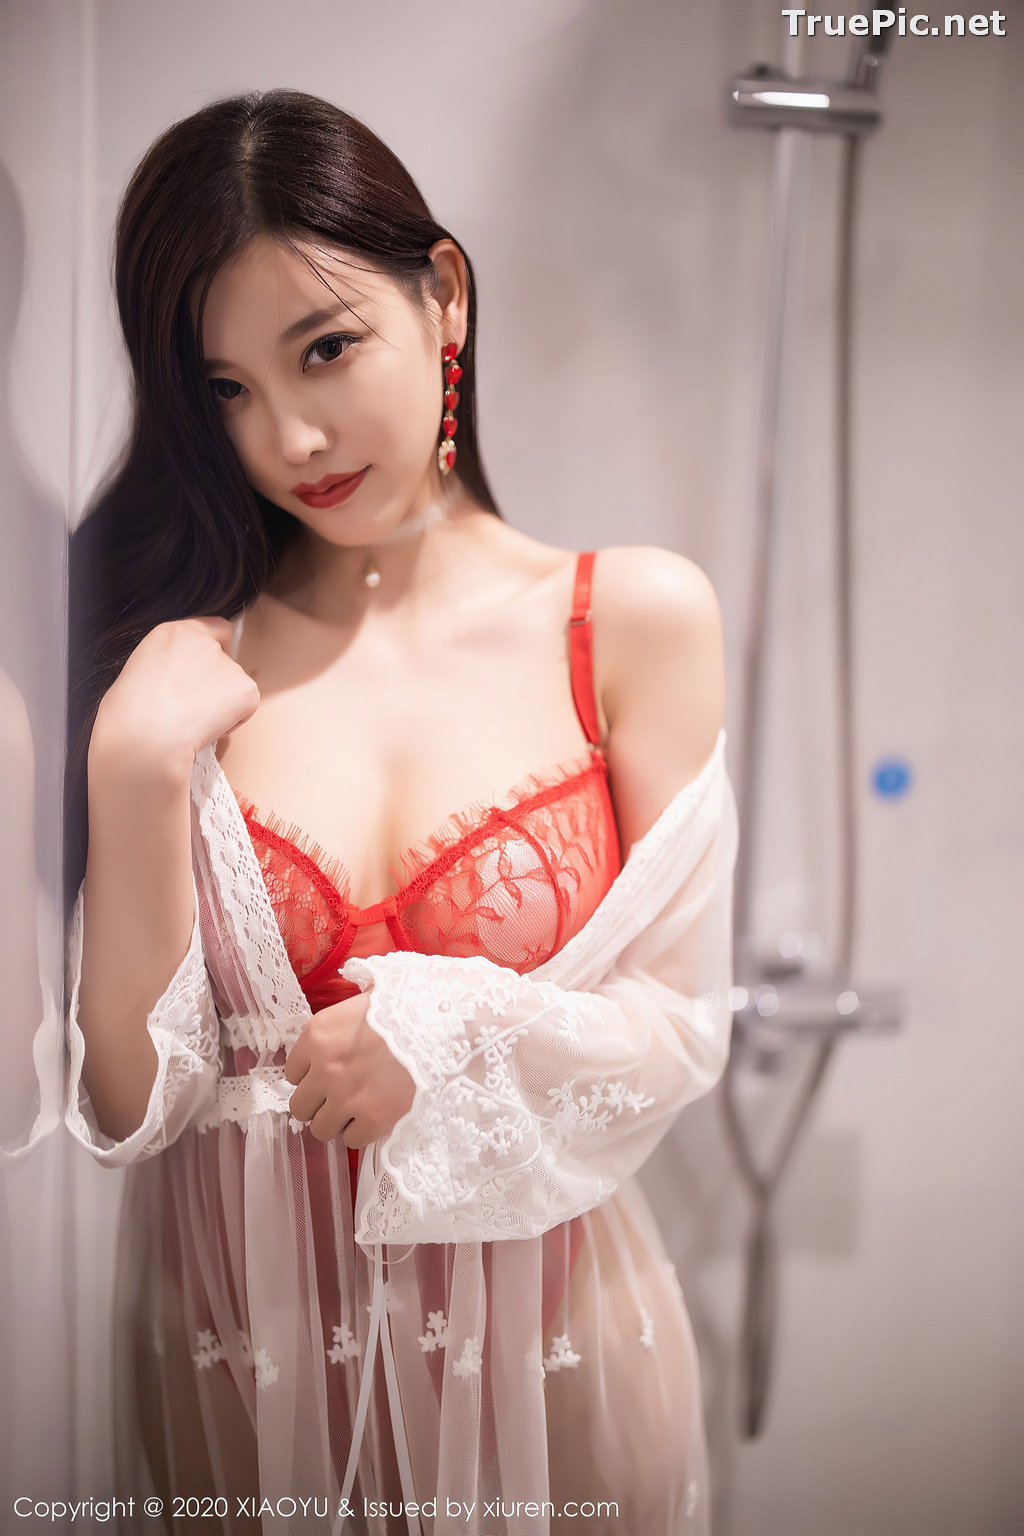 Image XiaoYu Vol.413 - Chinese Model - Yang Chen Chen (杨晨晨sugar)- Red Crystal-clear Lingerie - TruePic.net - Picture-51